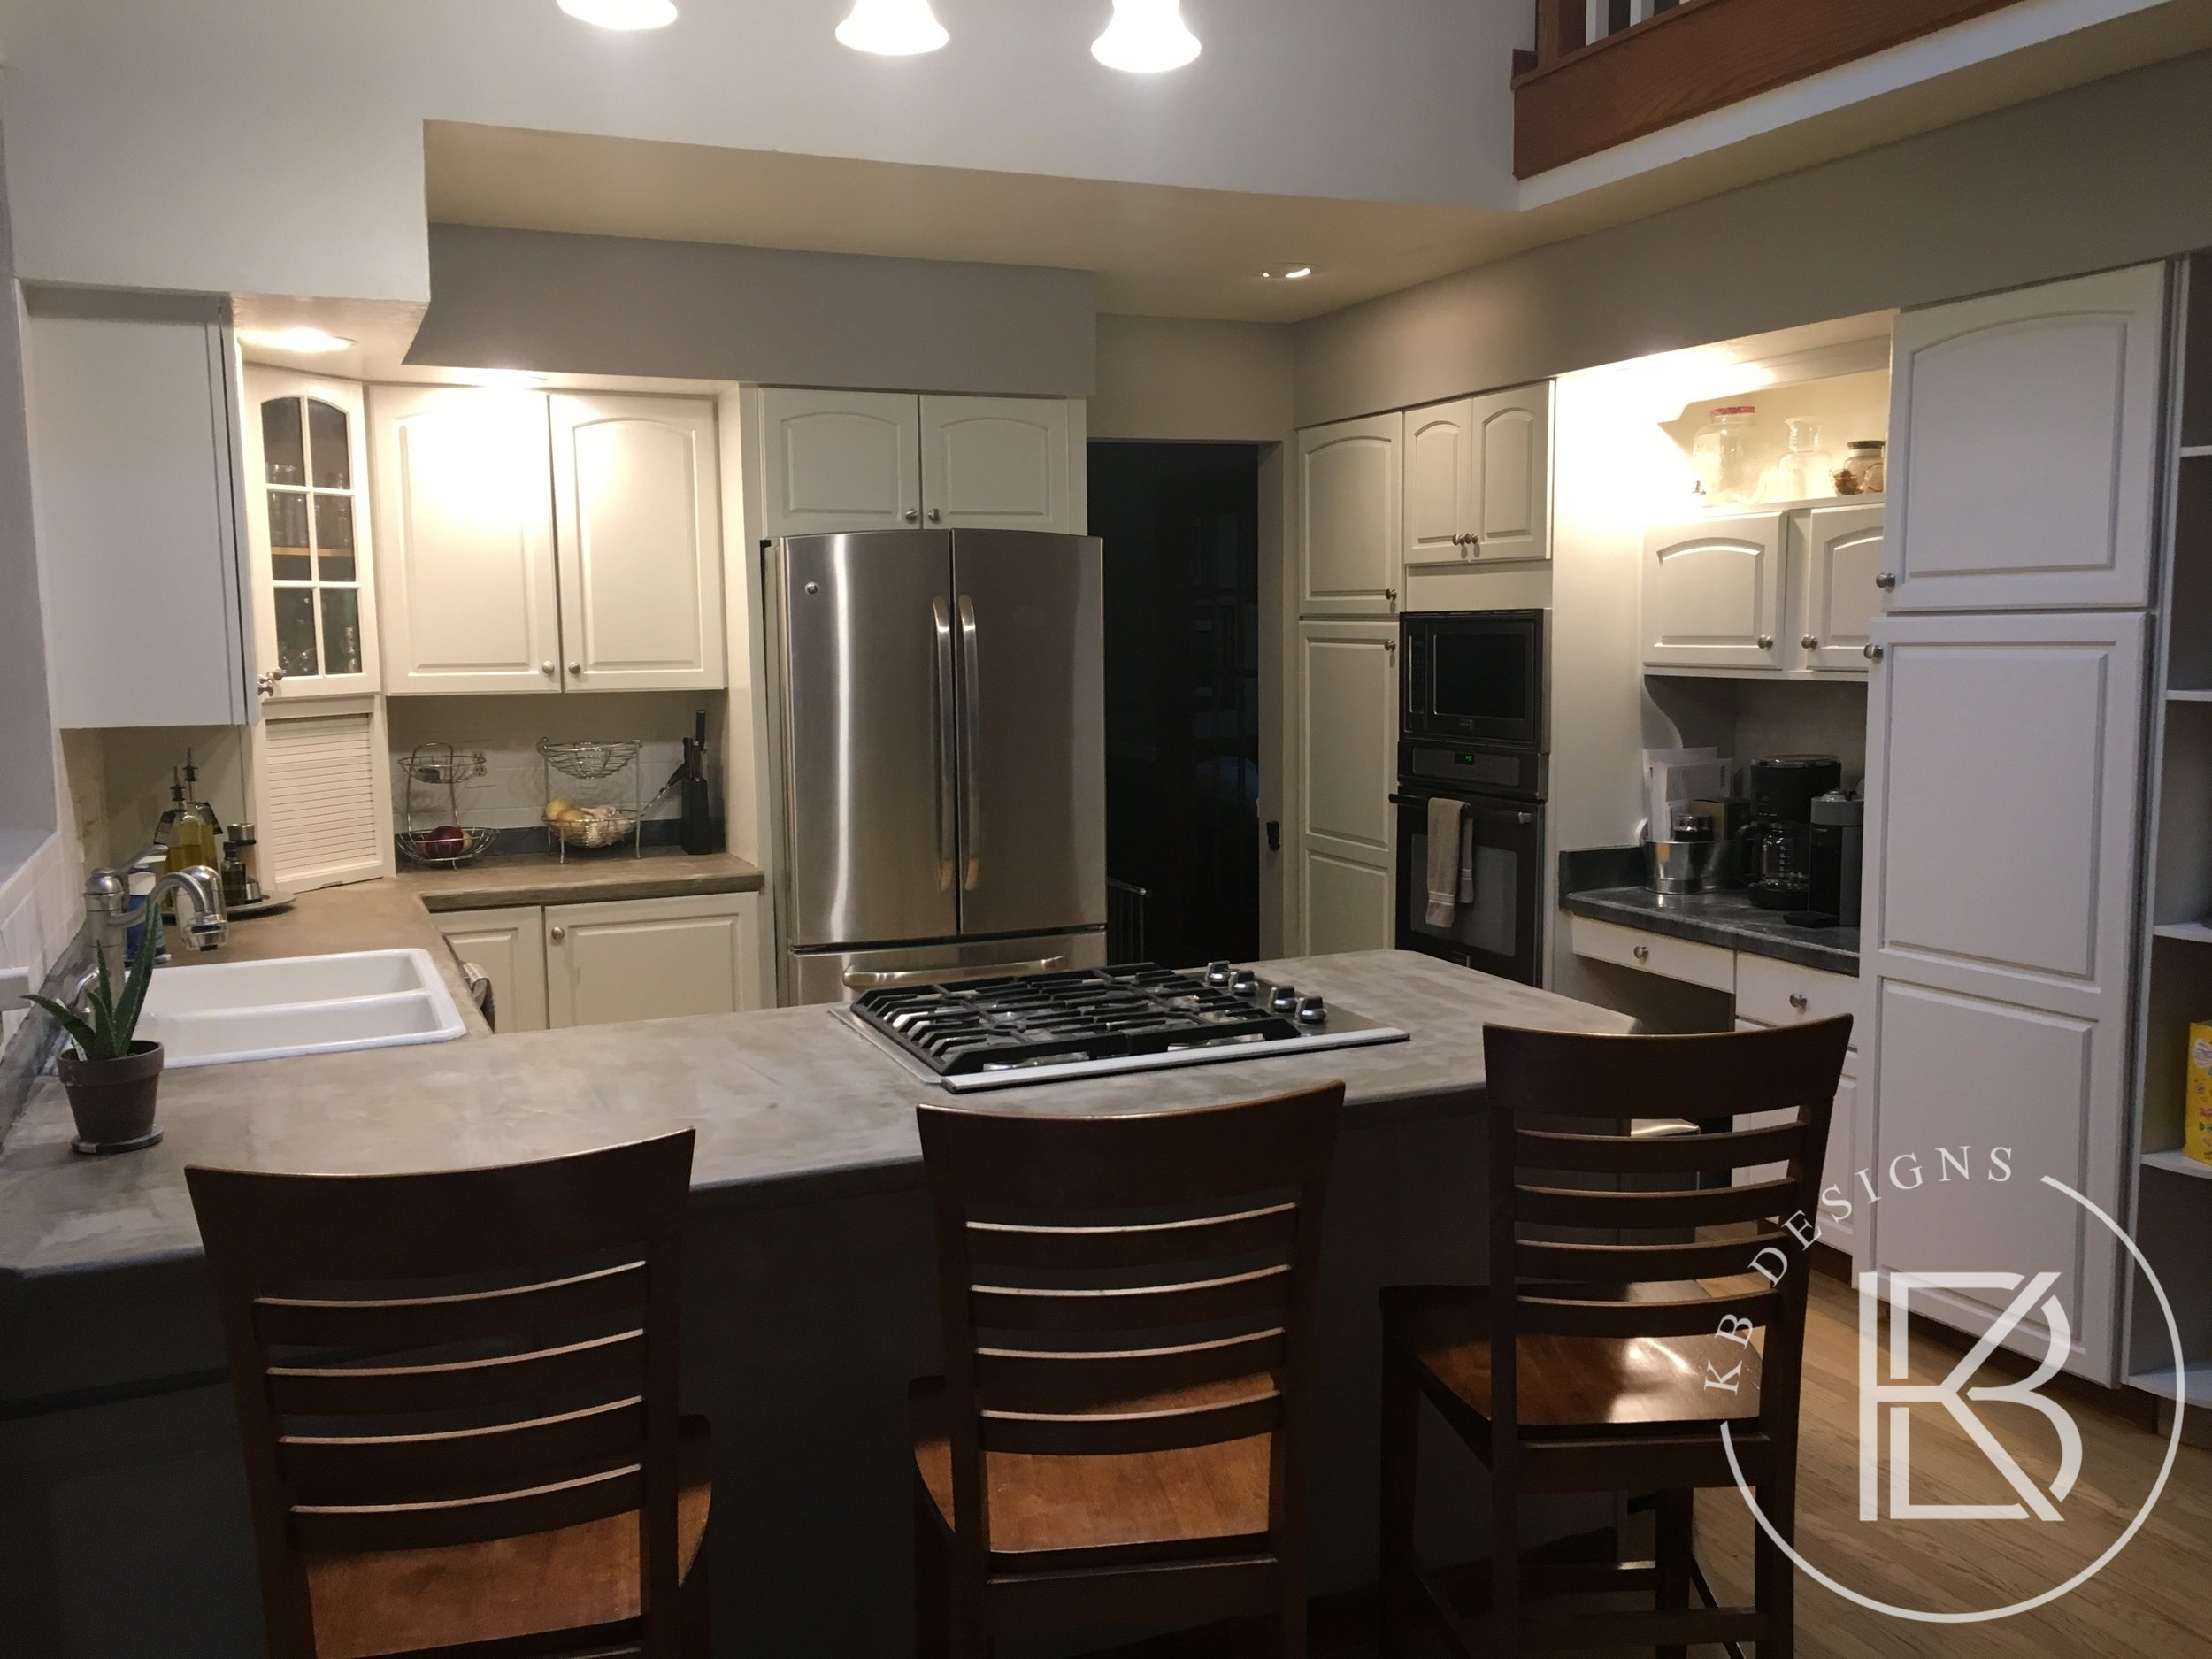 Kitchen refinishing by KB Designs